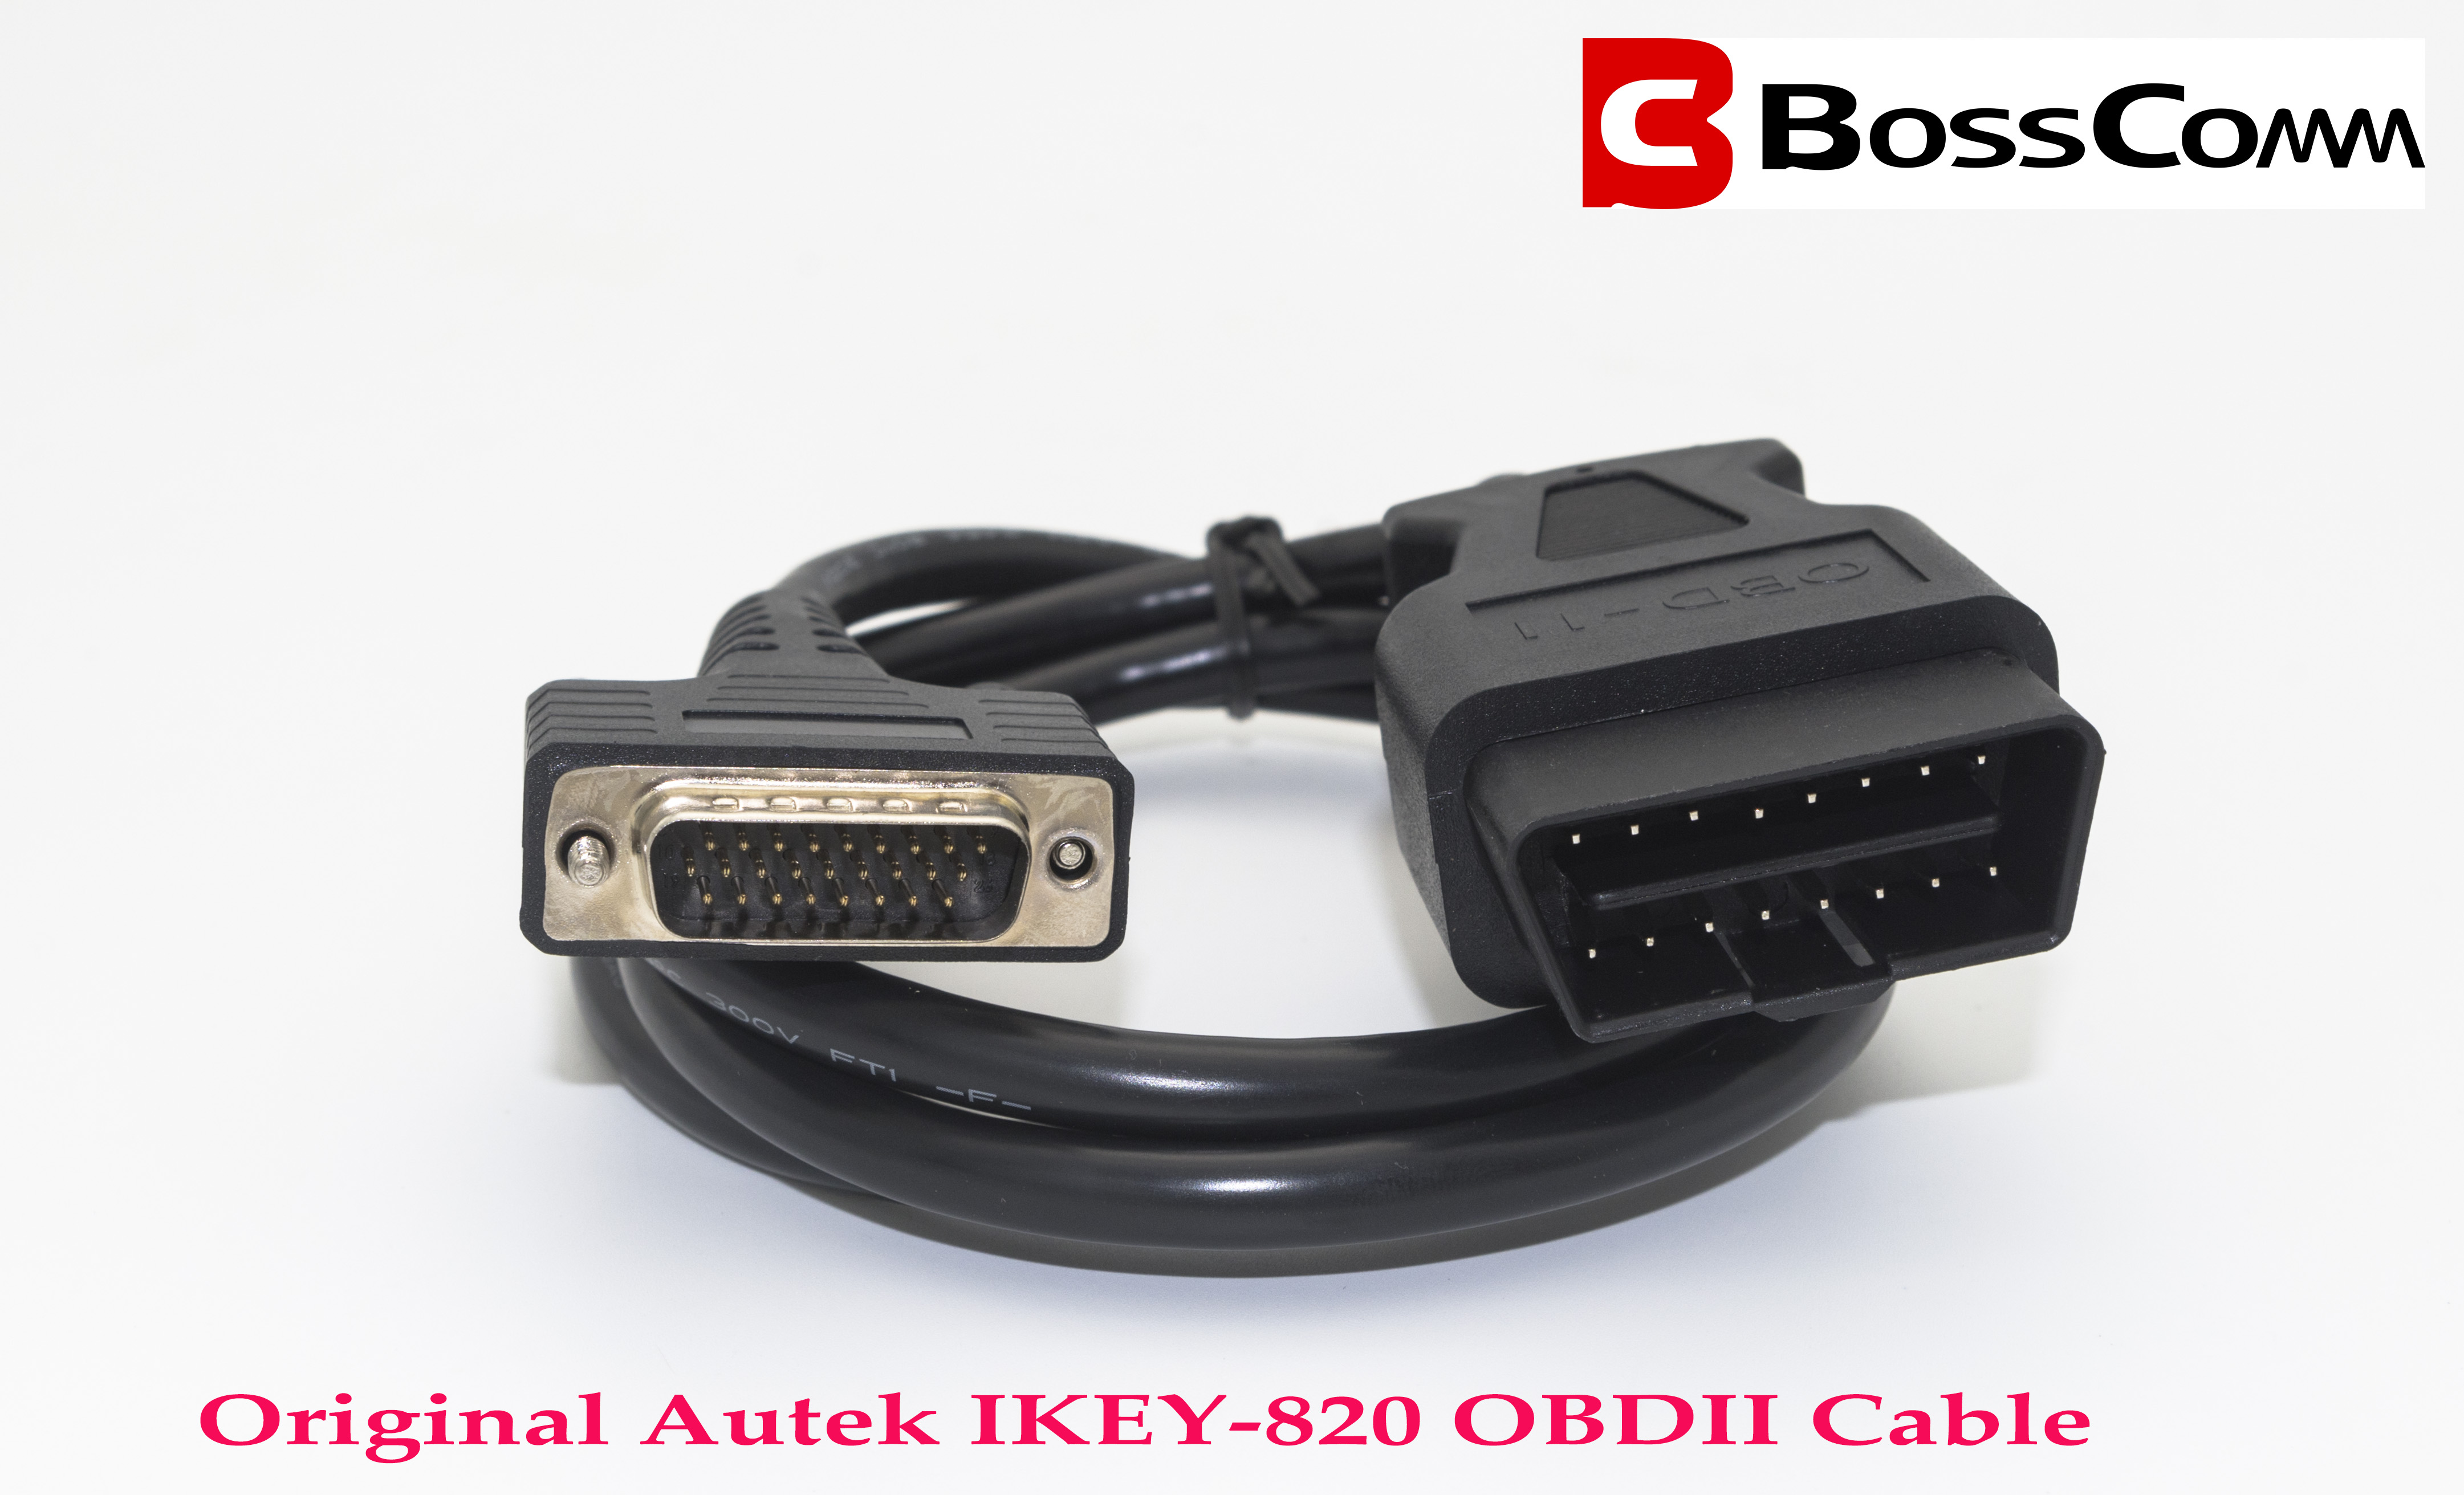 Image 3 - AUTEK IKEY820 Car Key Programemr Main Cord OBD2 cable BossComm Original tool shipping free in stock